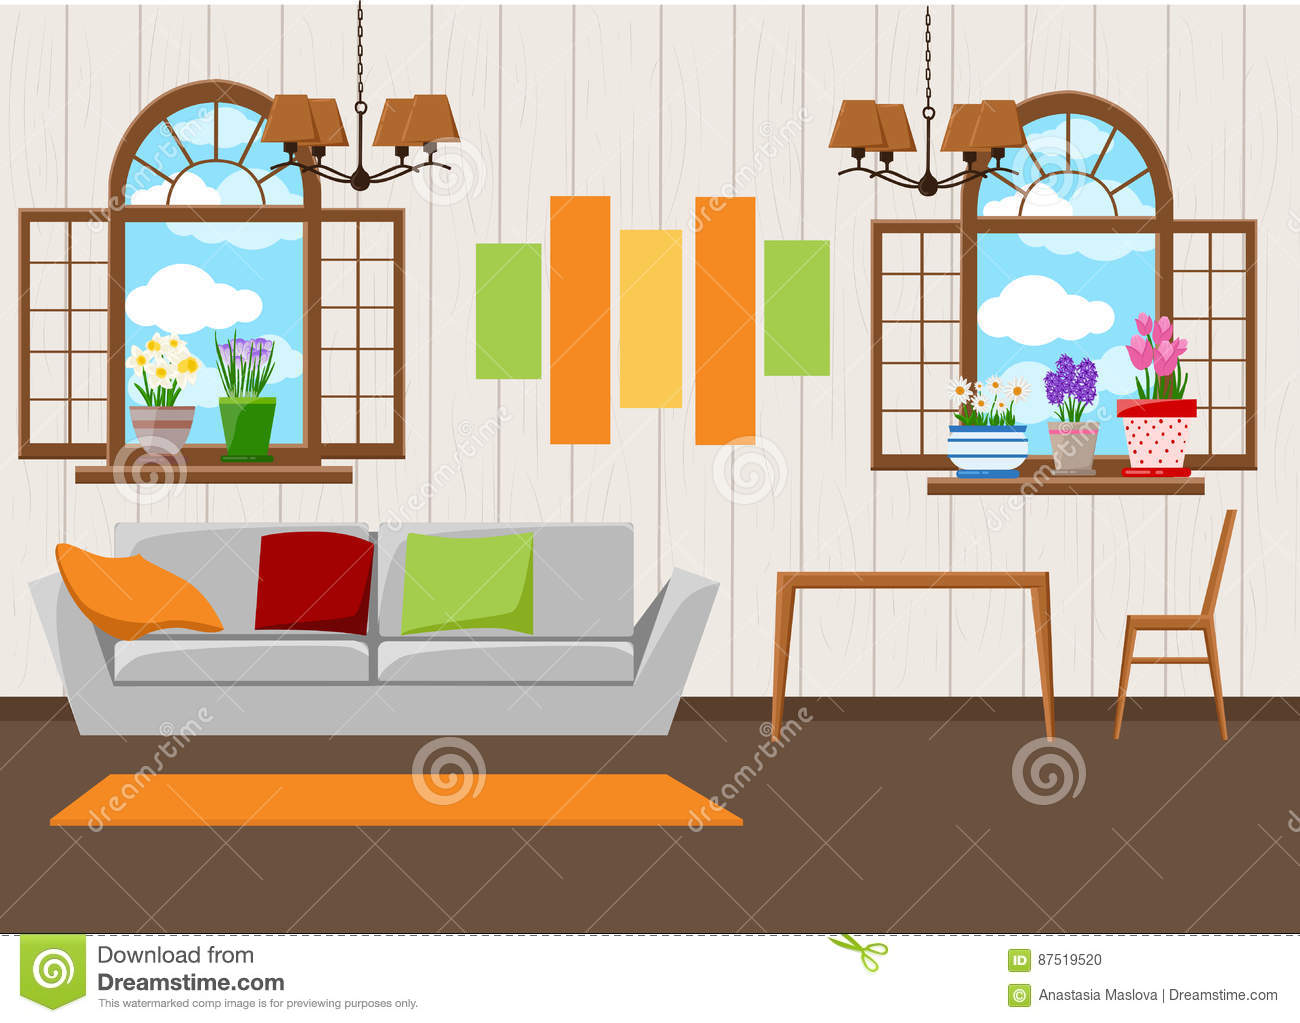 Beautiful design elements vector illustration of living room furniture in mid century modern style